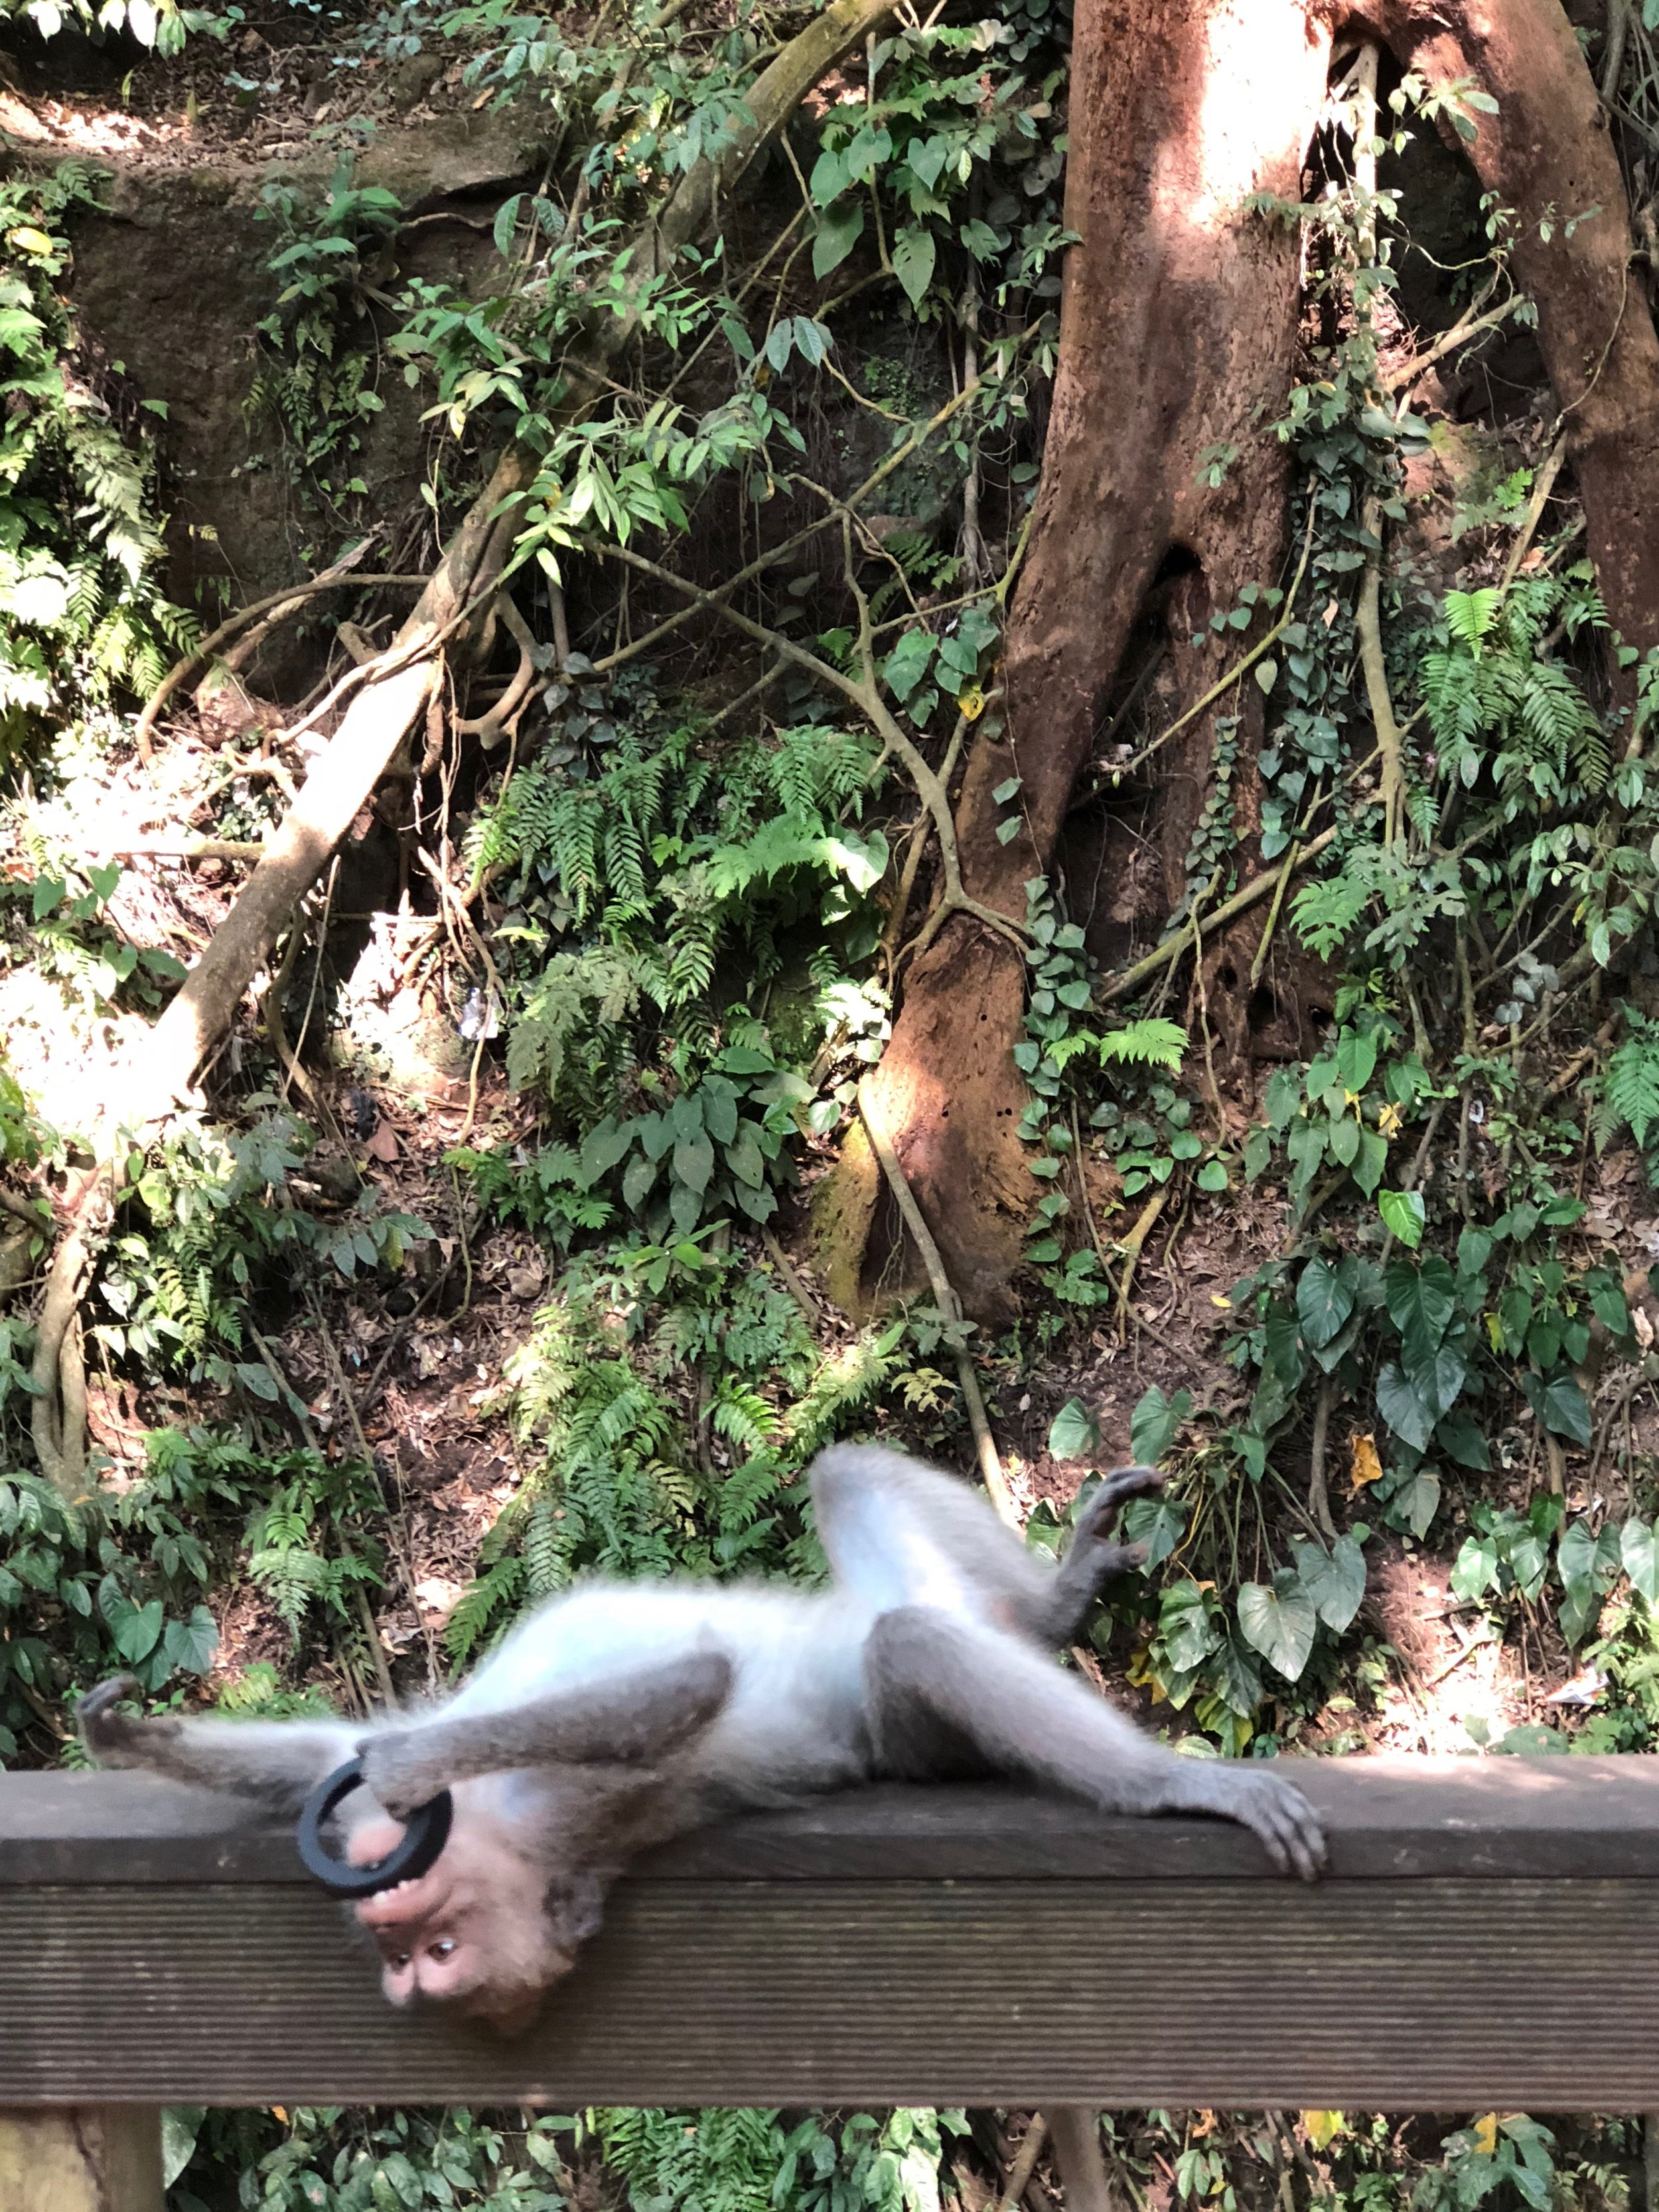 Down the path to the right is a landing where monkeys strike a pose